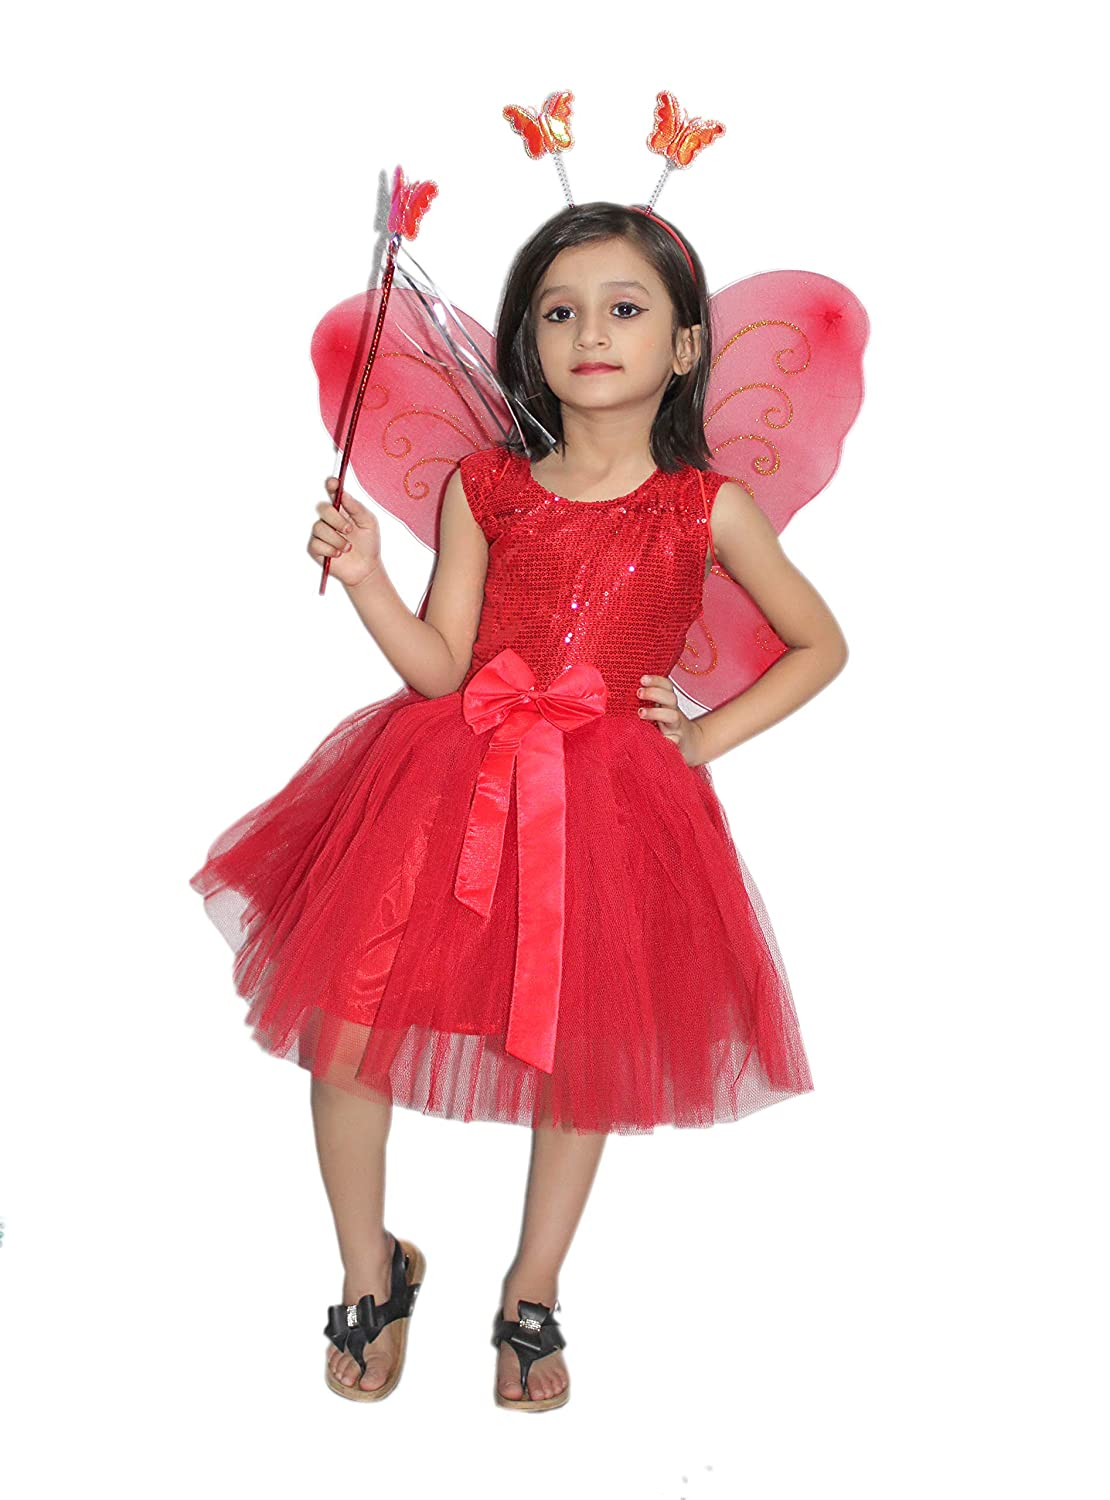 Kaku Fancy Dresses Red Butterfly Insect Costume -Red, 7-7 Years, for Girls